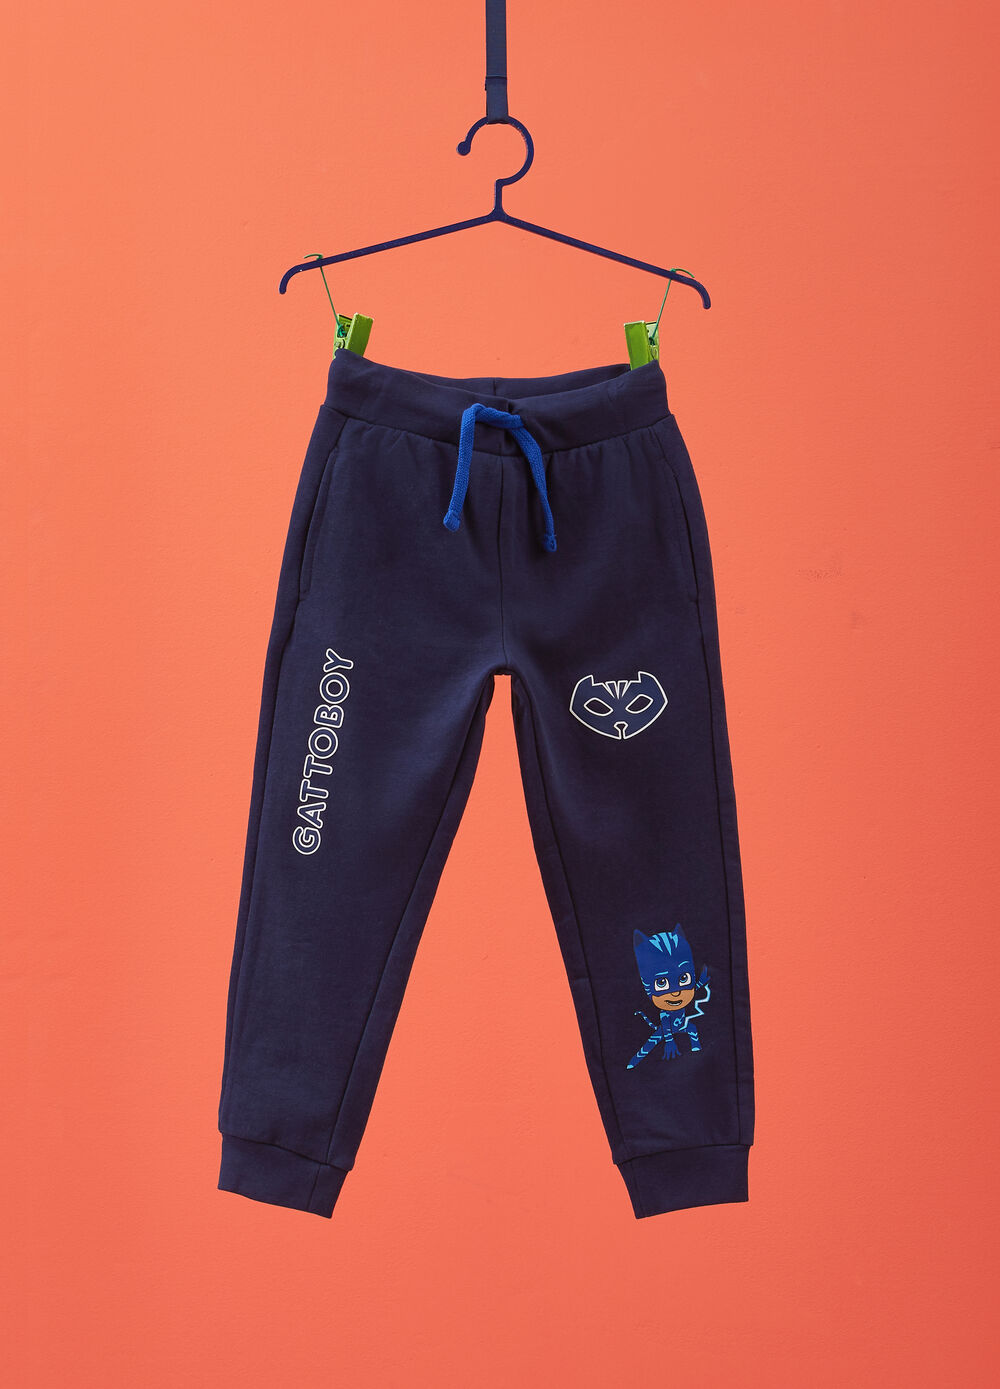 Trousers in 100% cotton with PJ Masks print